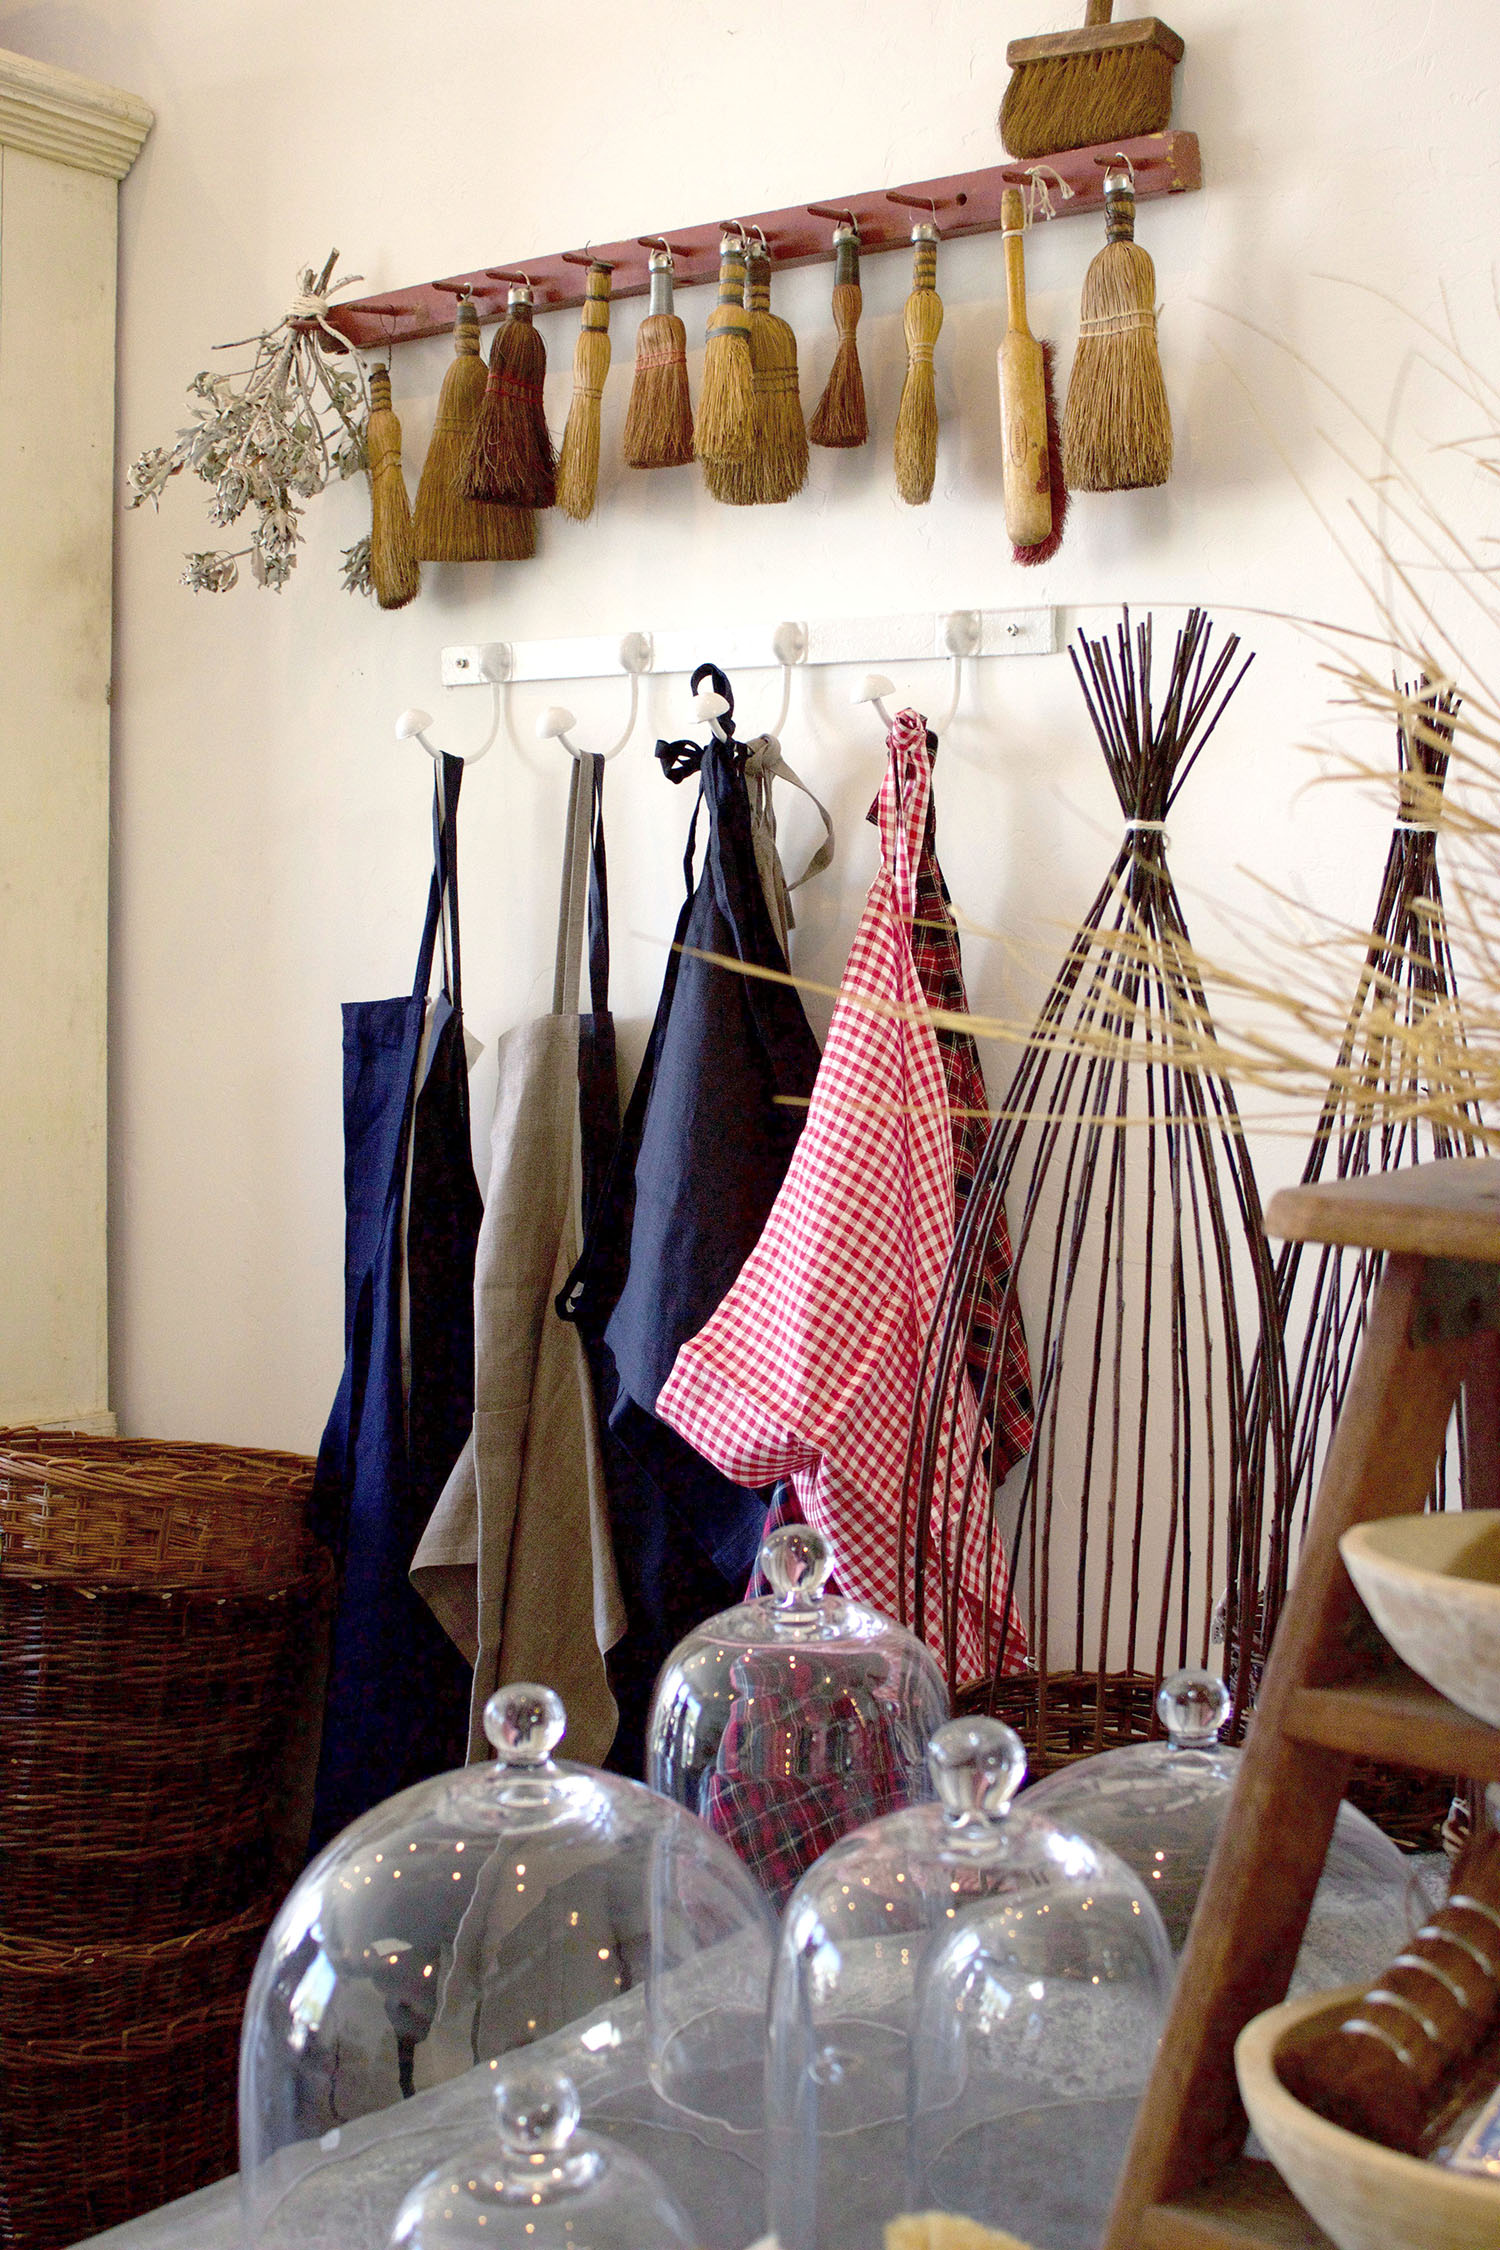 Handmade cleaning brushes and aprons promise to elevate your daily chores.